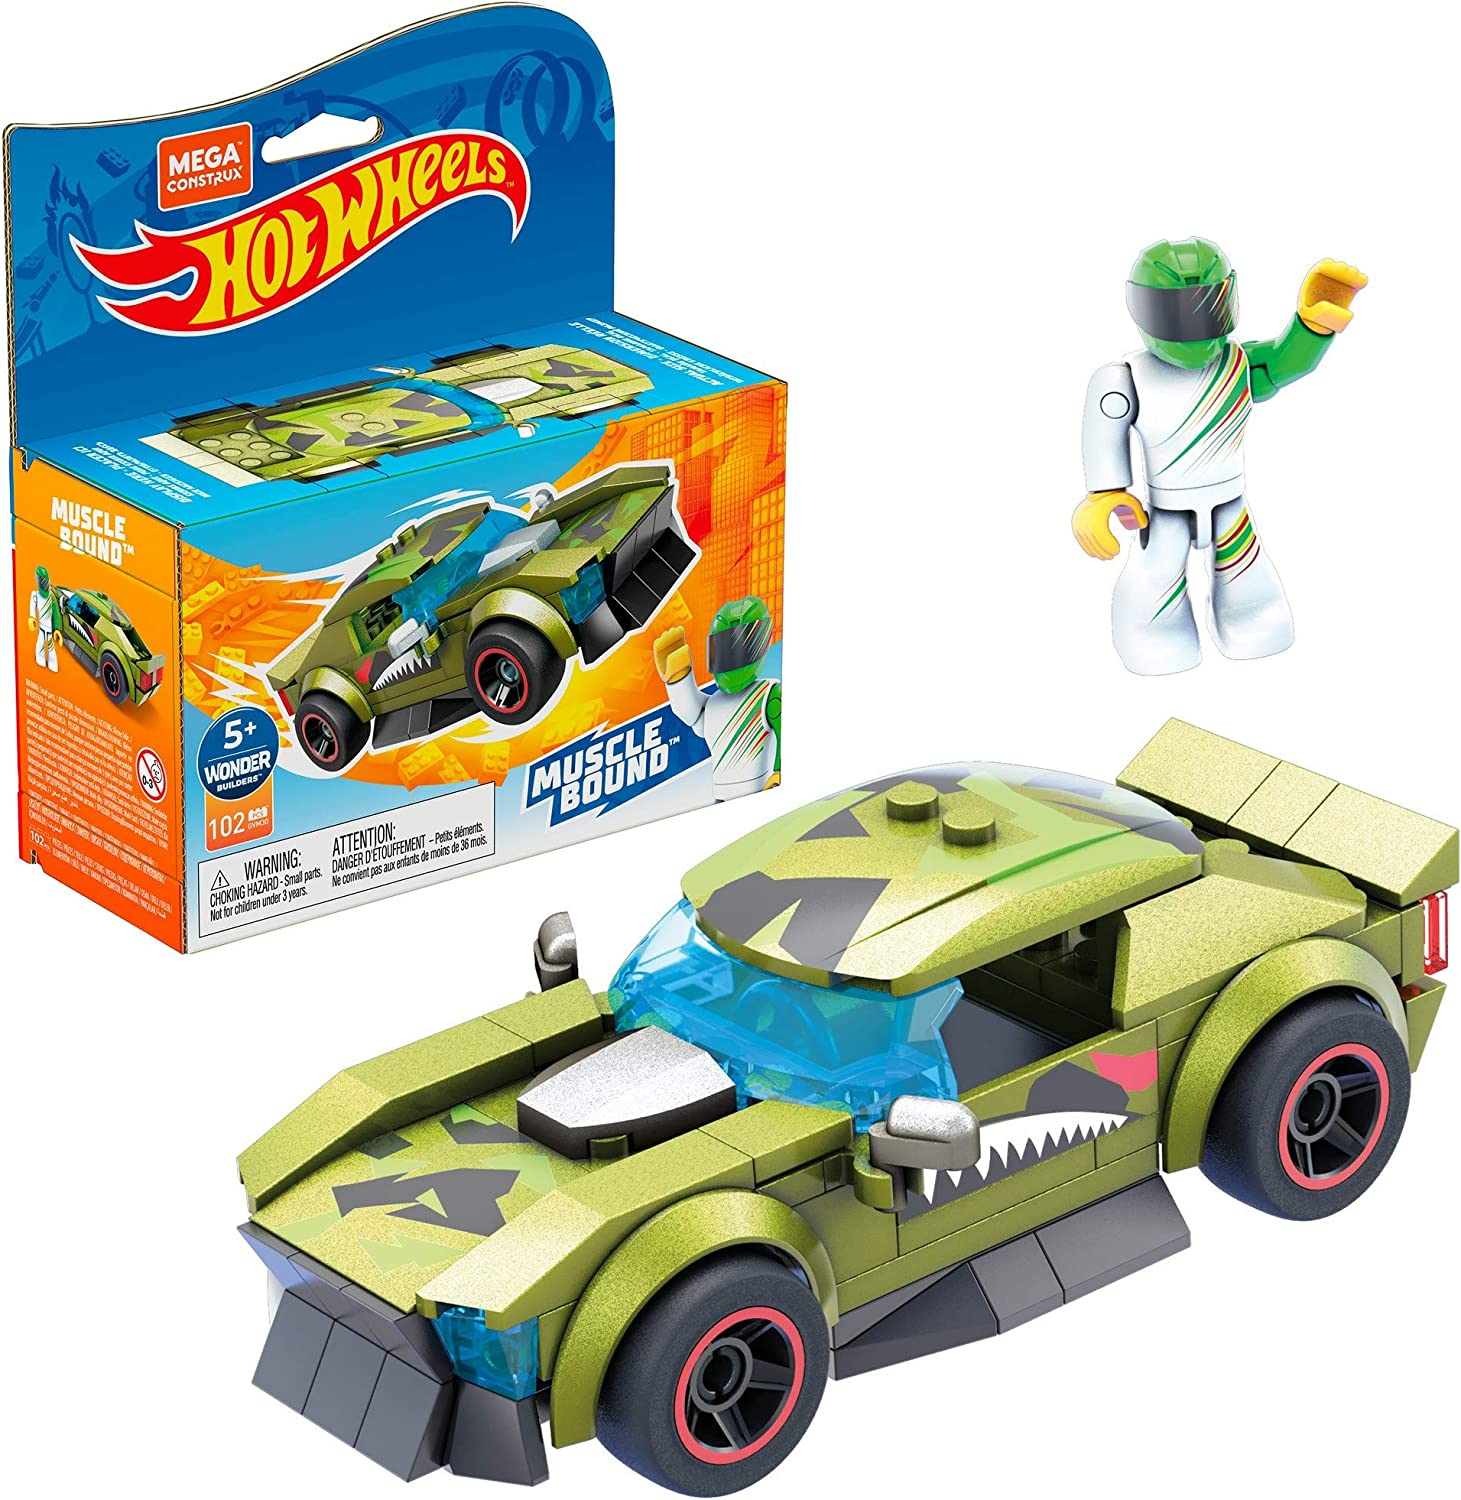 Mega Construx Hot Wheels Muscle Bound Construction Set, Building Toys for Kids 5 Years and Up